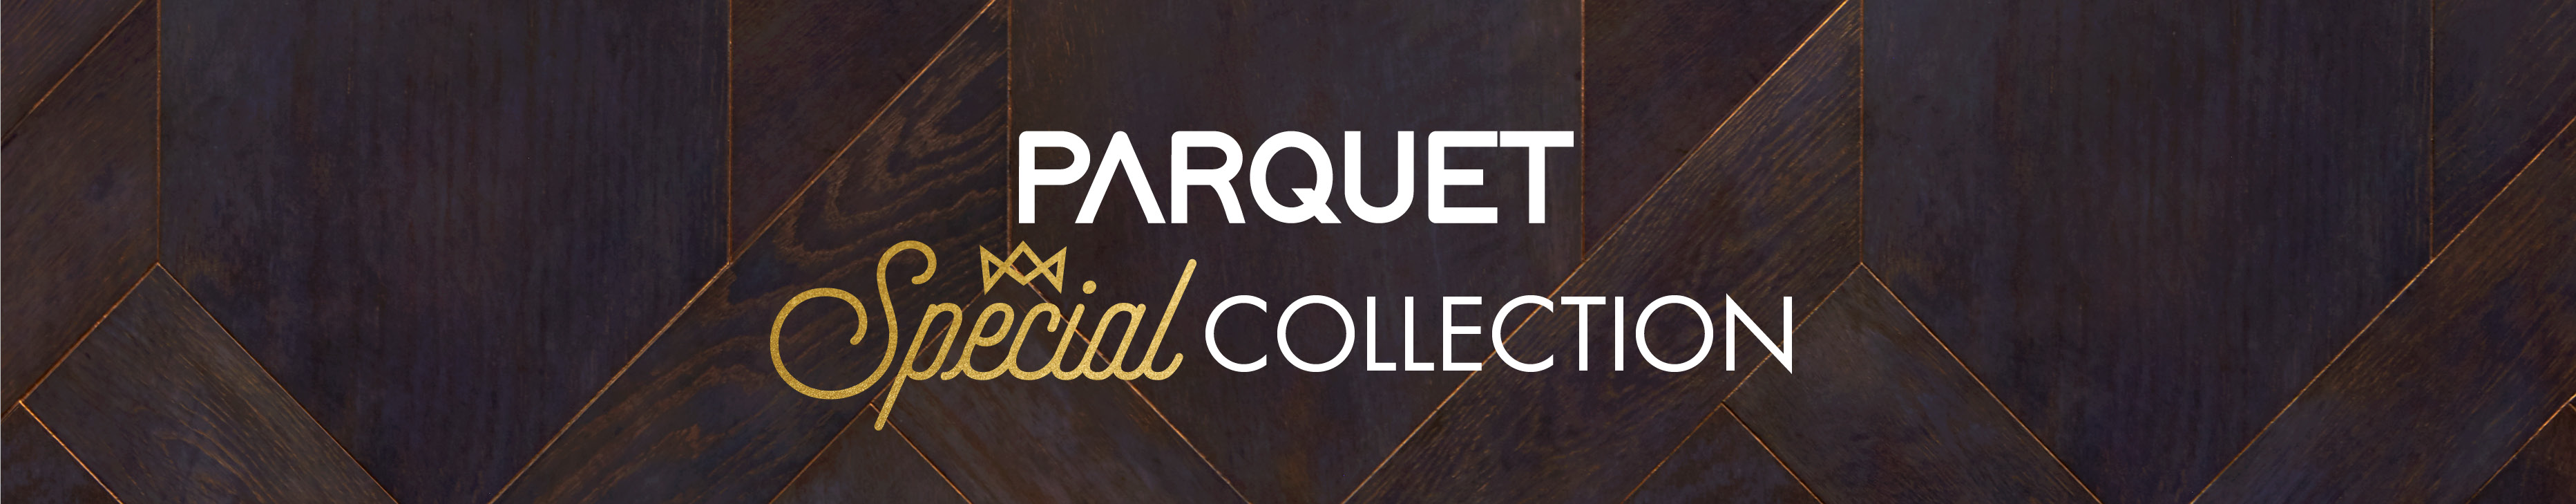 We Love Parquet Concept Store Special Collection